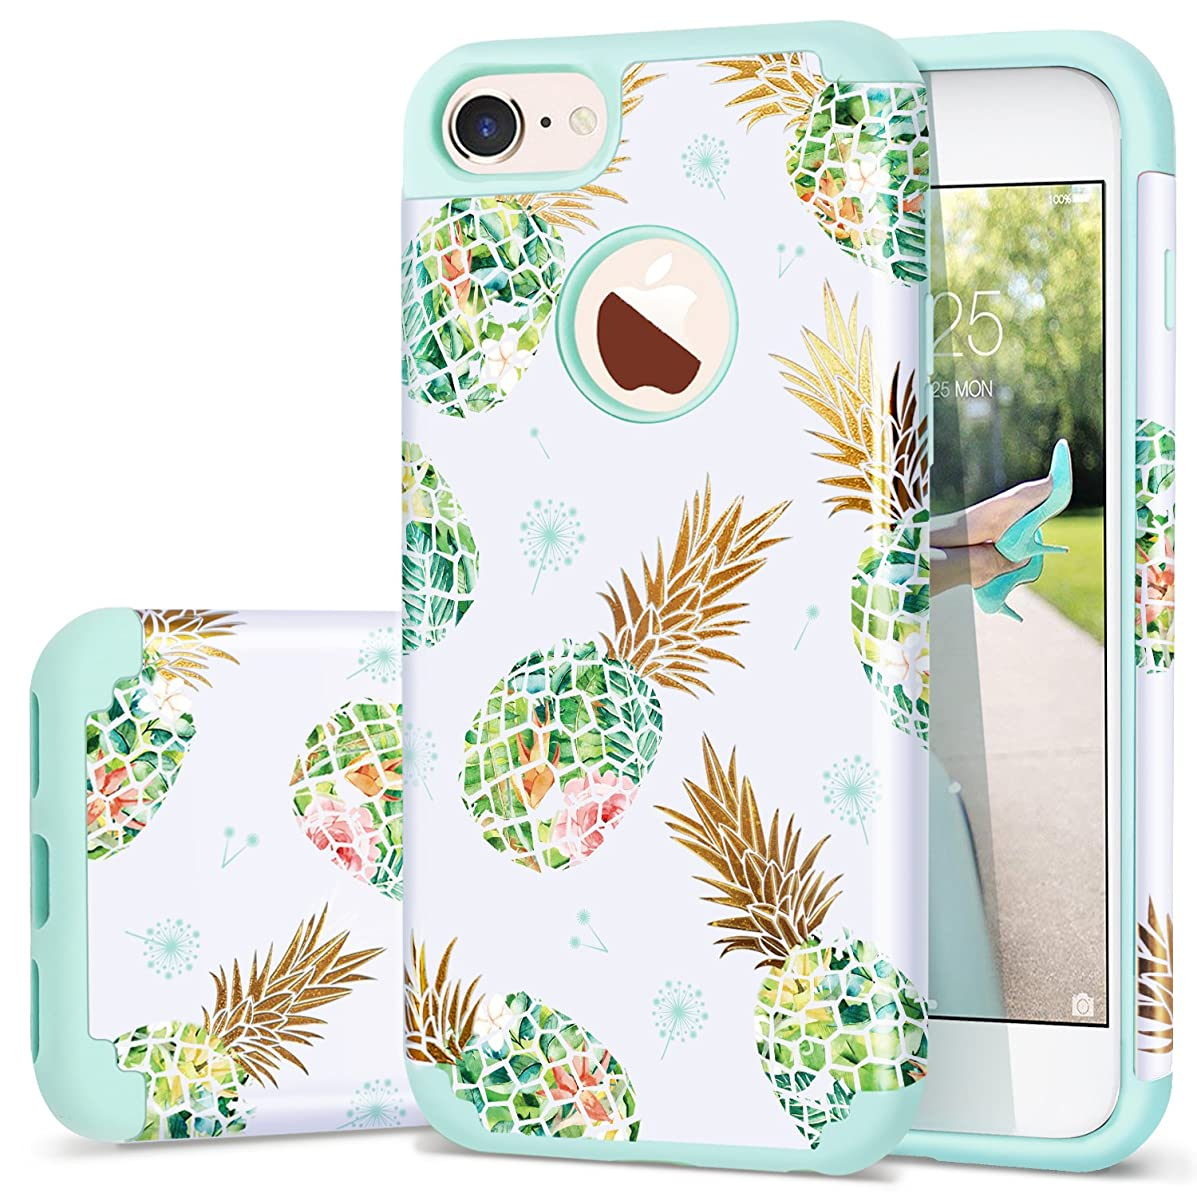 iPhone 8 Case,Pineapple iPhone 7 Case,Fingic Silicone Pineapple Design CASE Anti-Scratch Shock Proof Protective Summer Case 2 in1 Hybrid Skin Cover for iPhone 8/7 4.7 Inch,Green